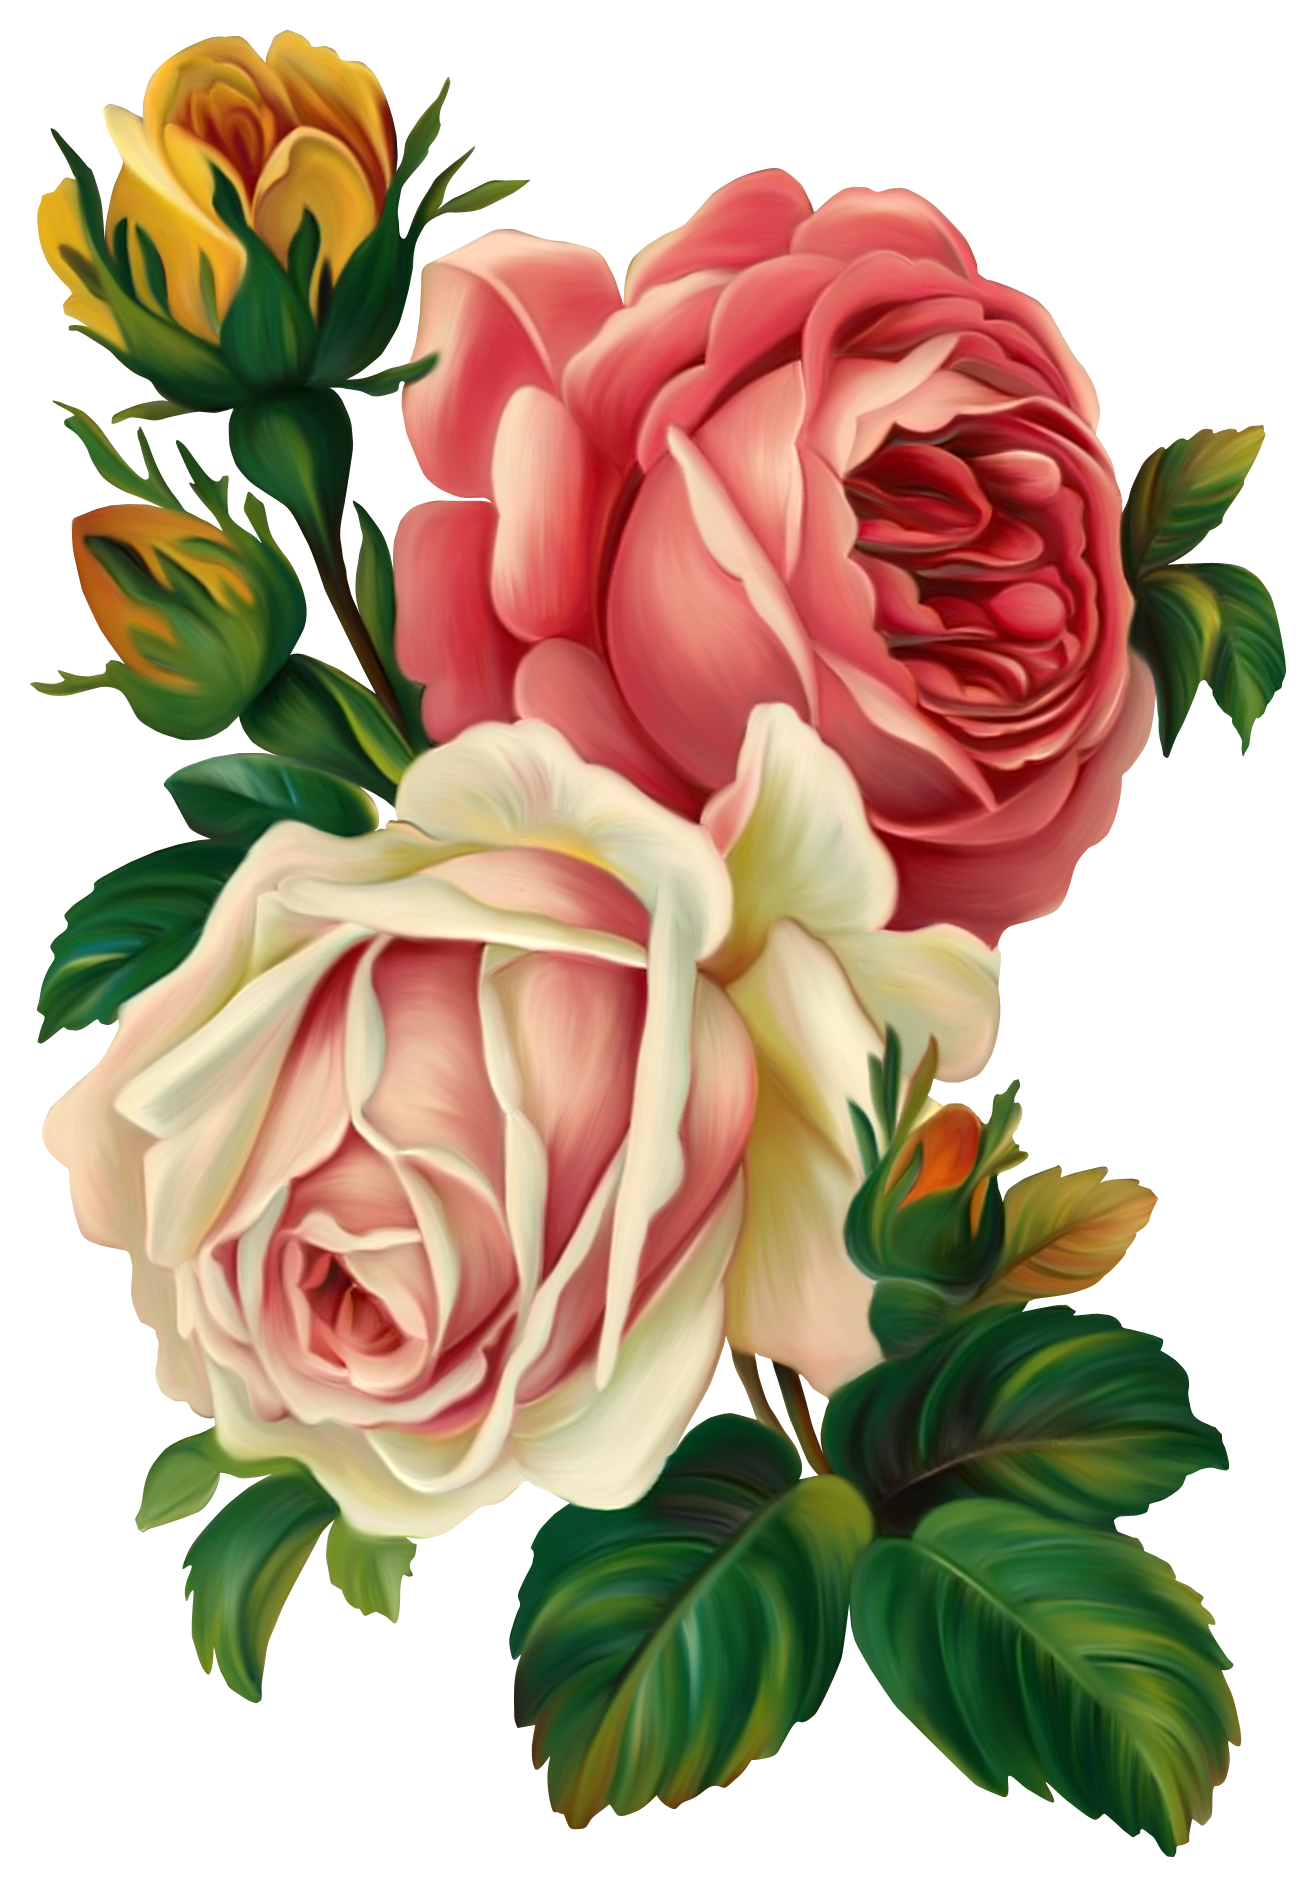 Clipart roses cross. Vintage flower c utare